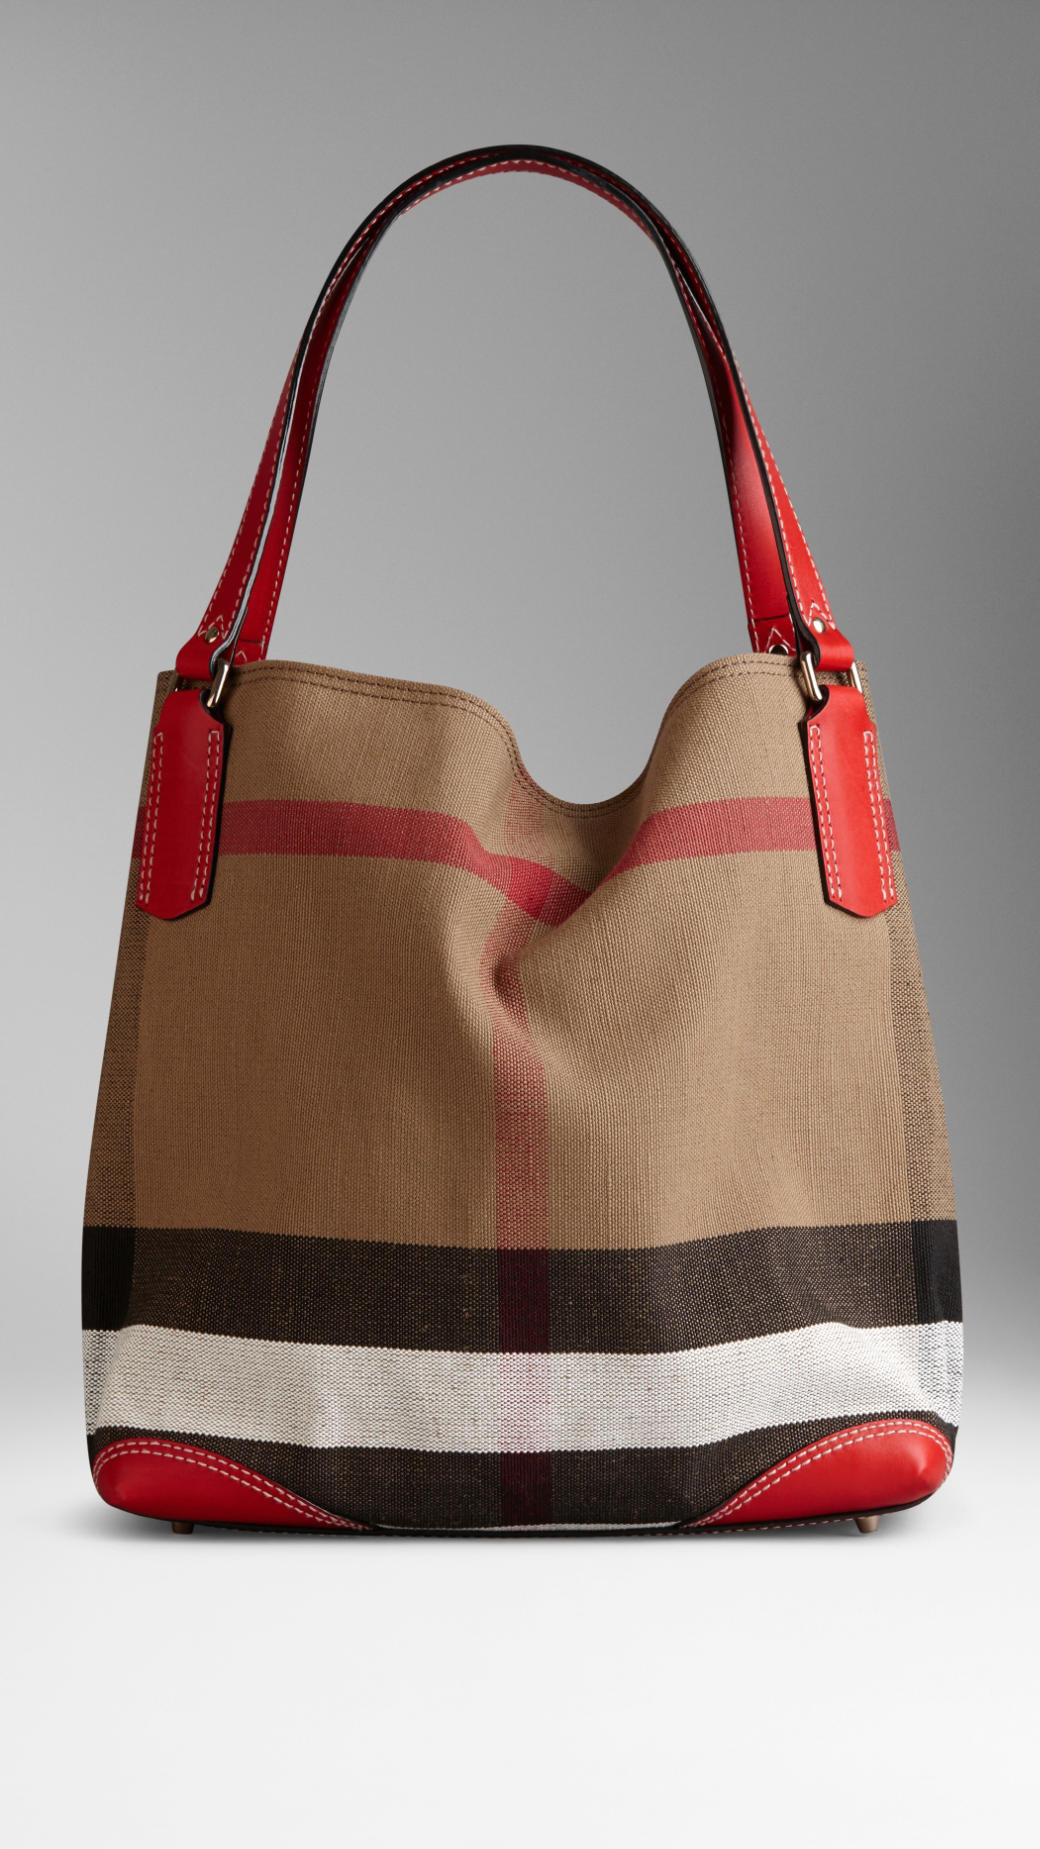 Burberry Medium Canvas Check Tote Bag in Red (cadmium red) a50f3d7c77dea